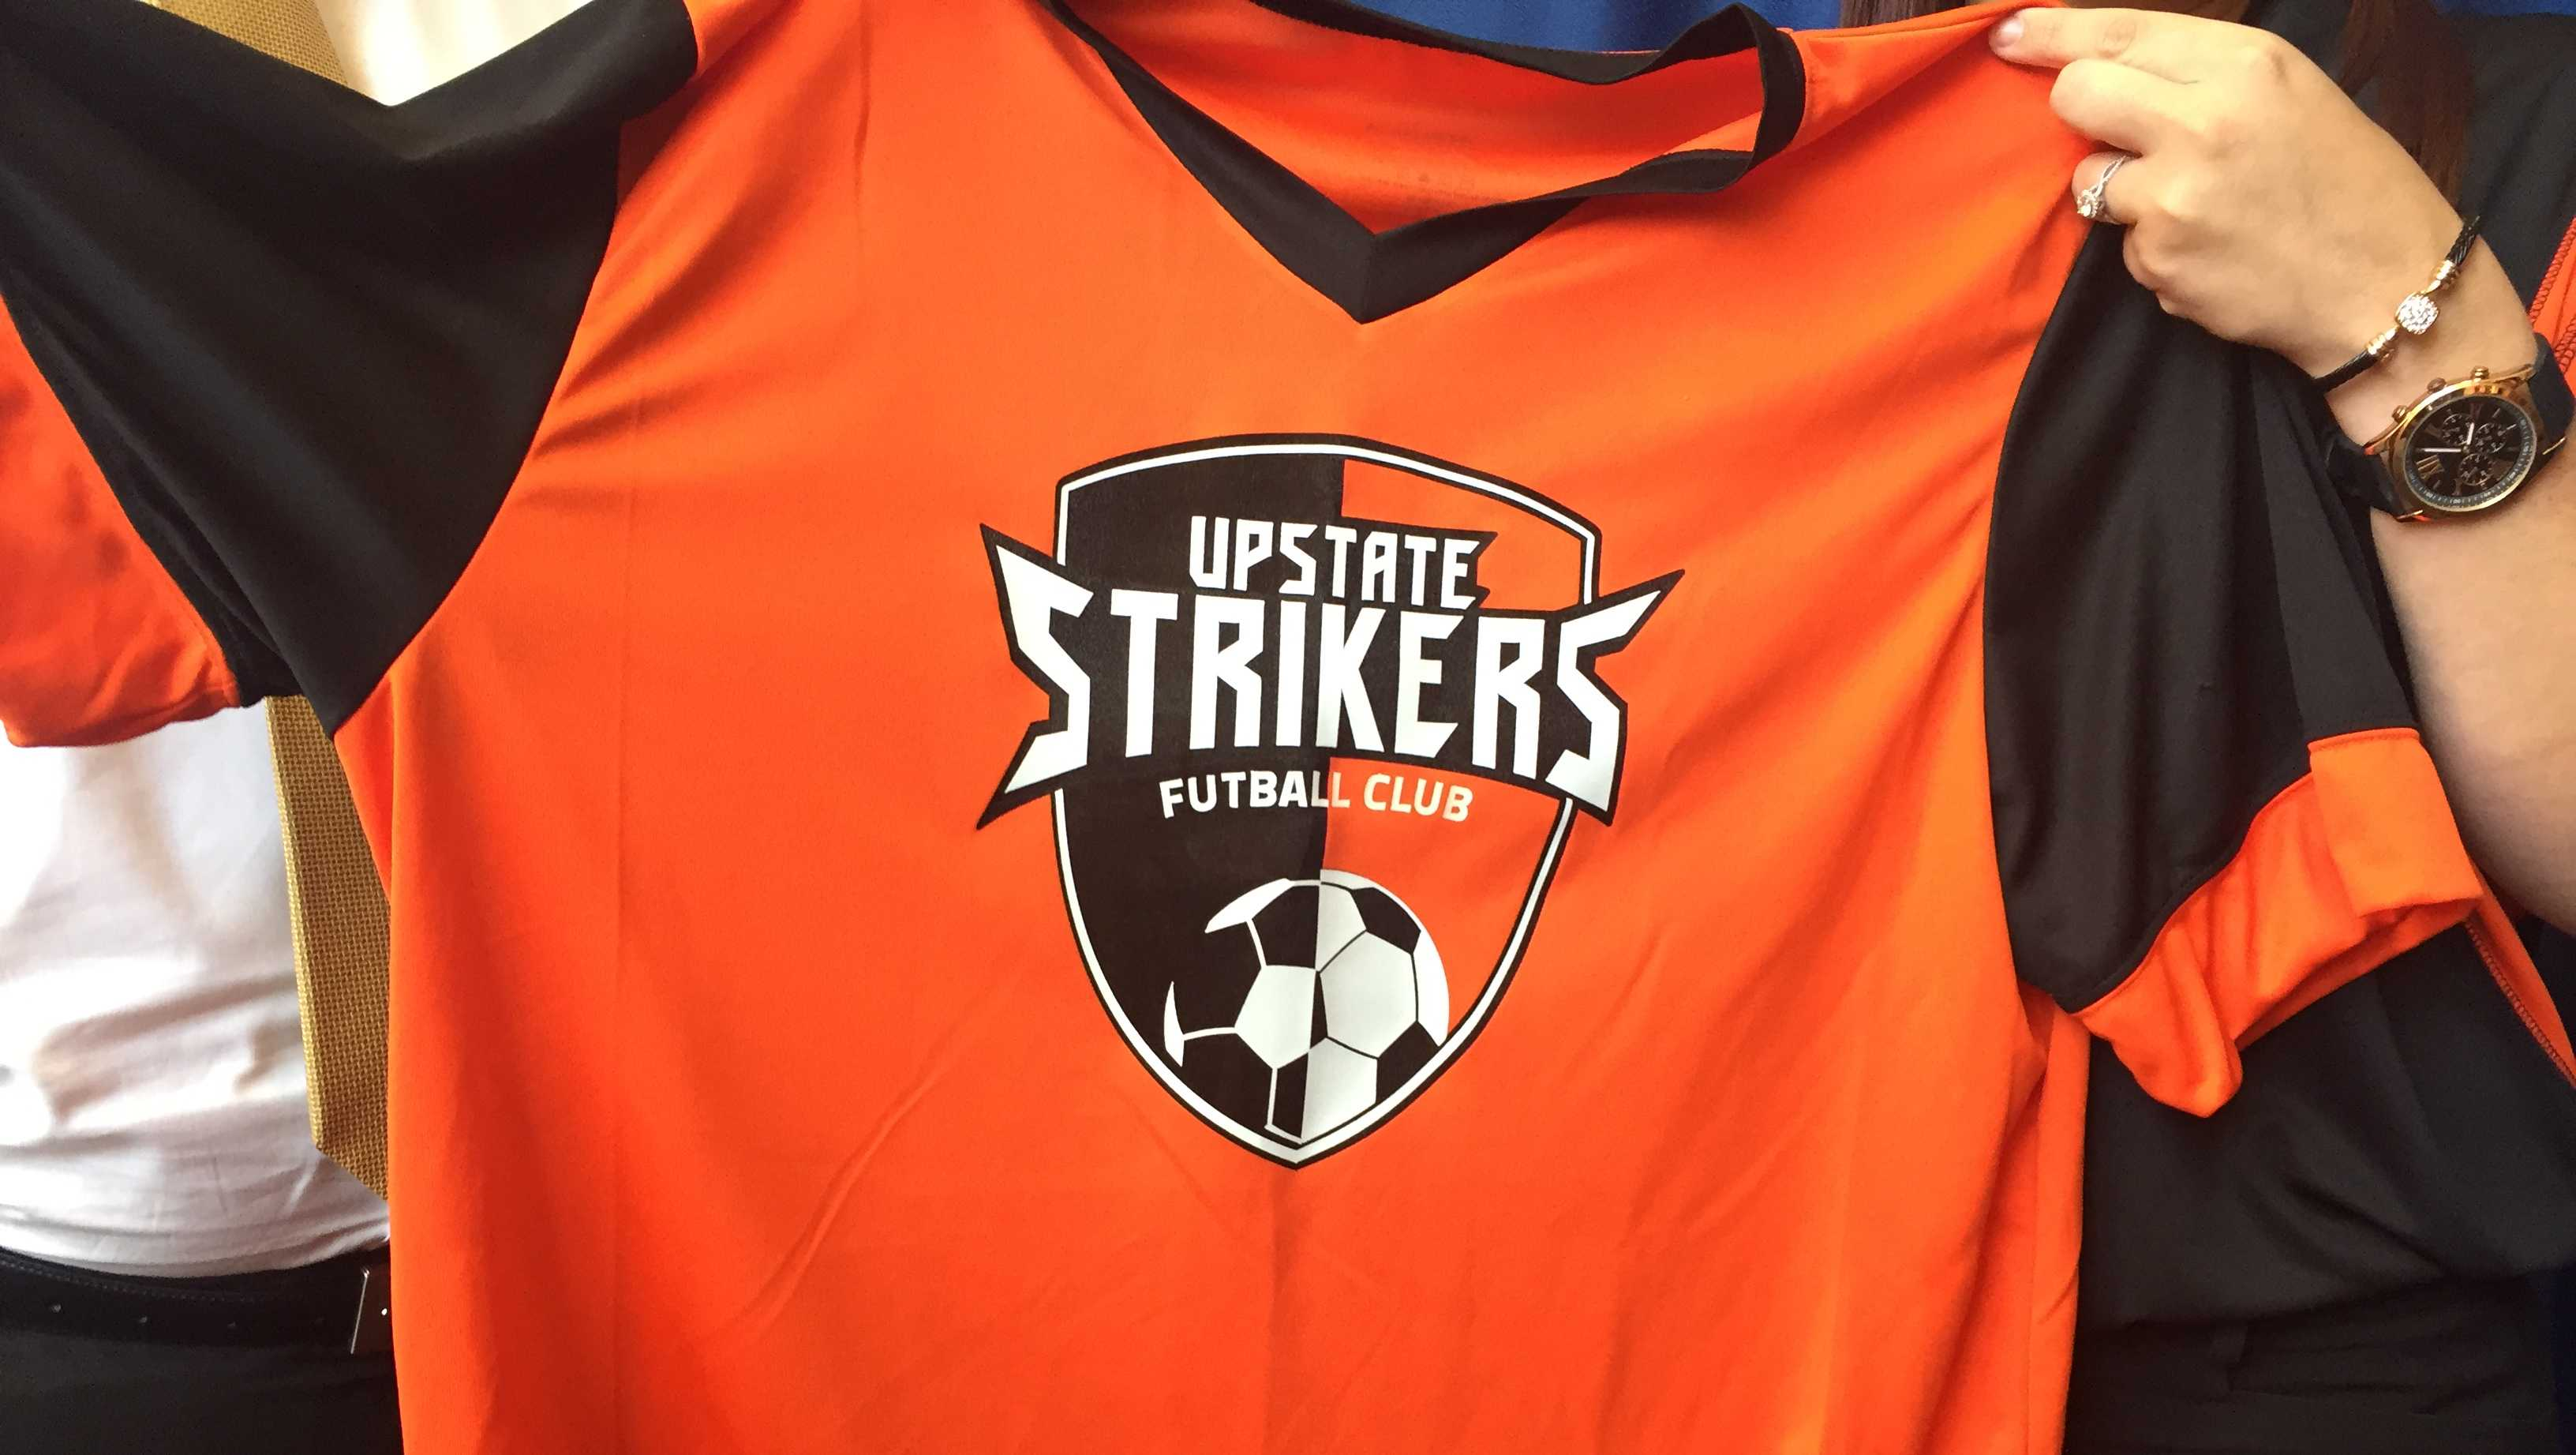 Upstate Strikers